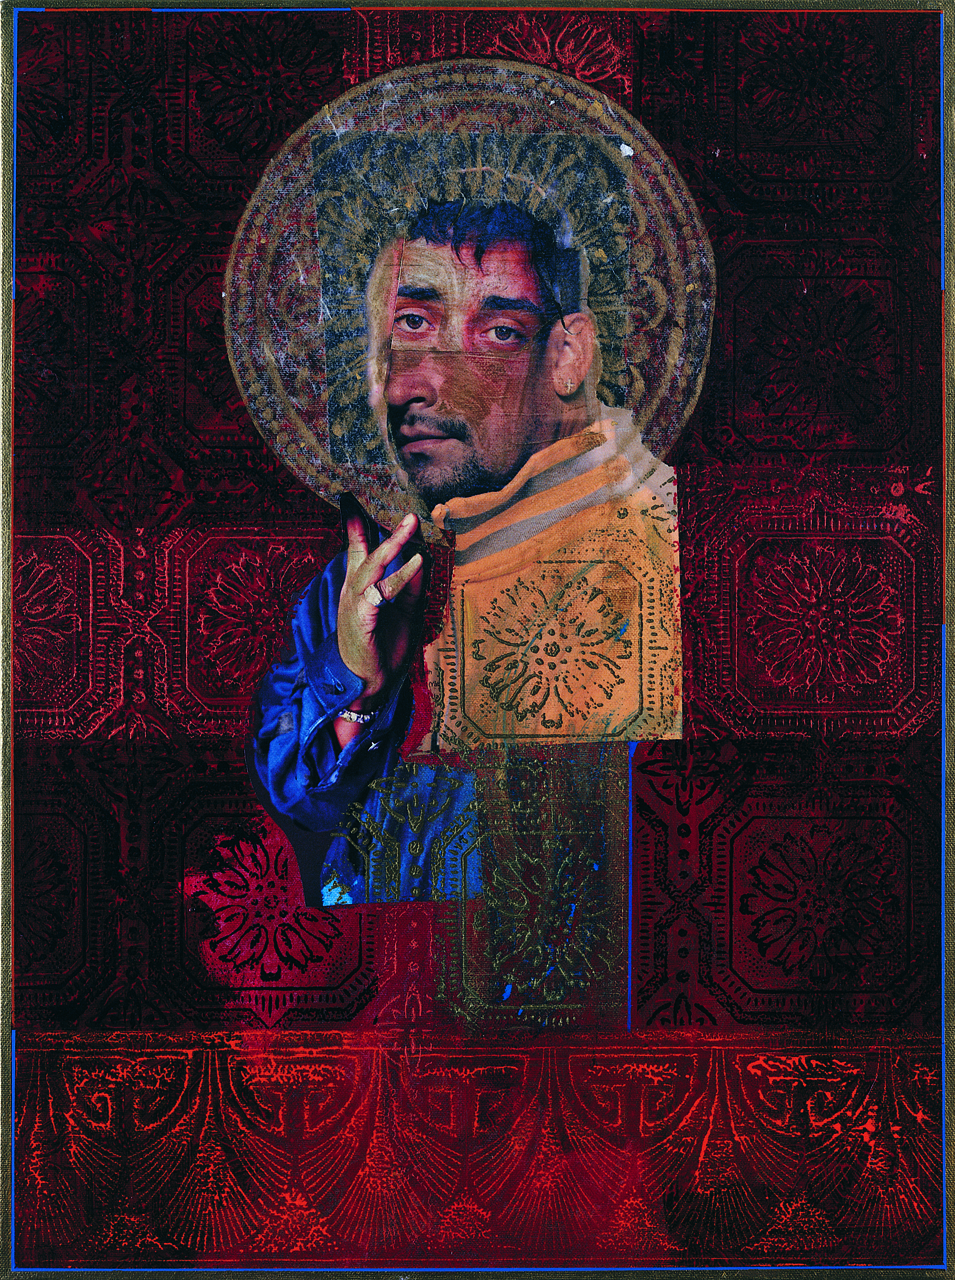 """Rodríguez Calero, """"Saint Anthony"""" (1999), acrollage painting, 24 x 18 inches"""